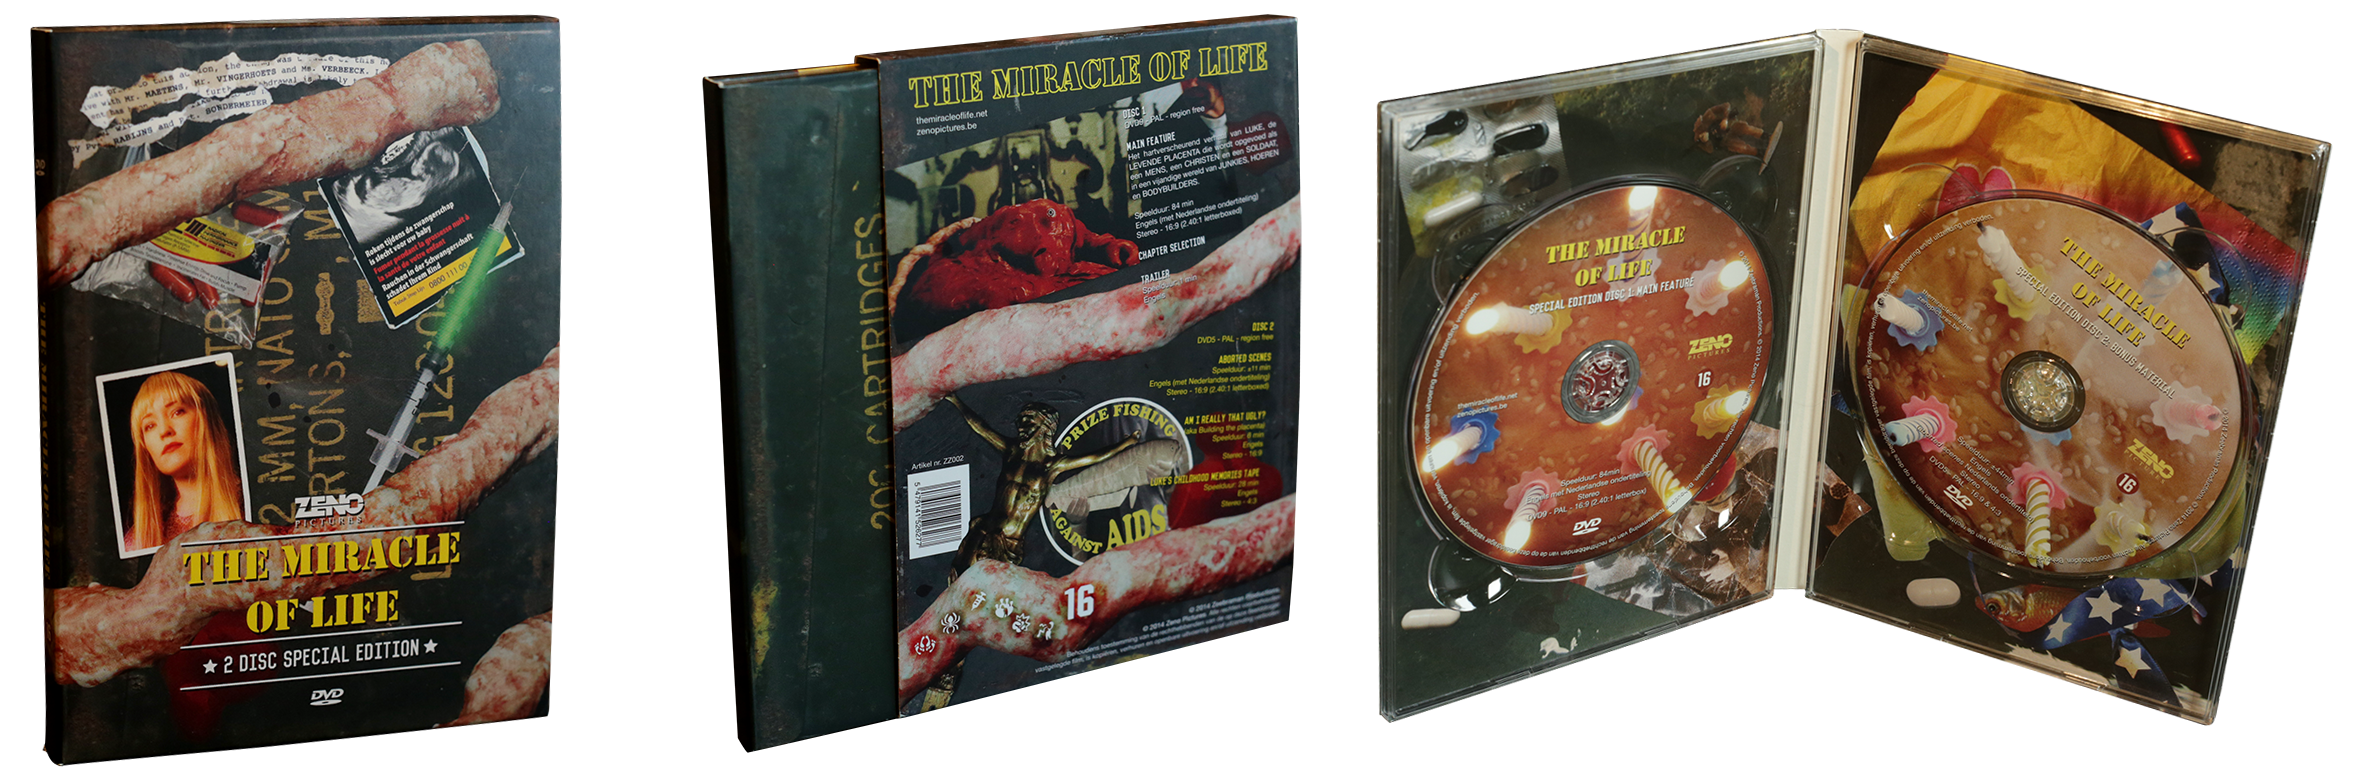 content_2dvd